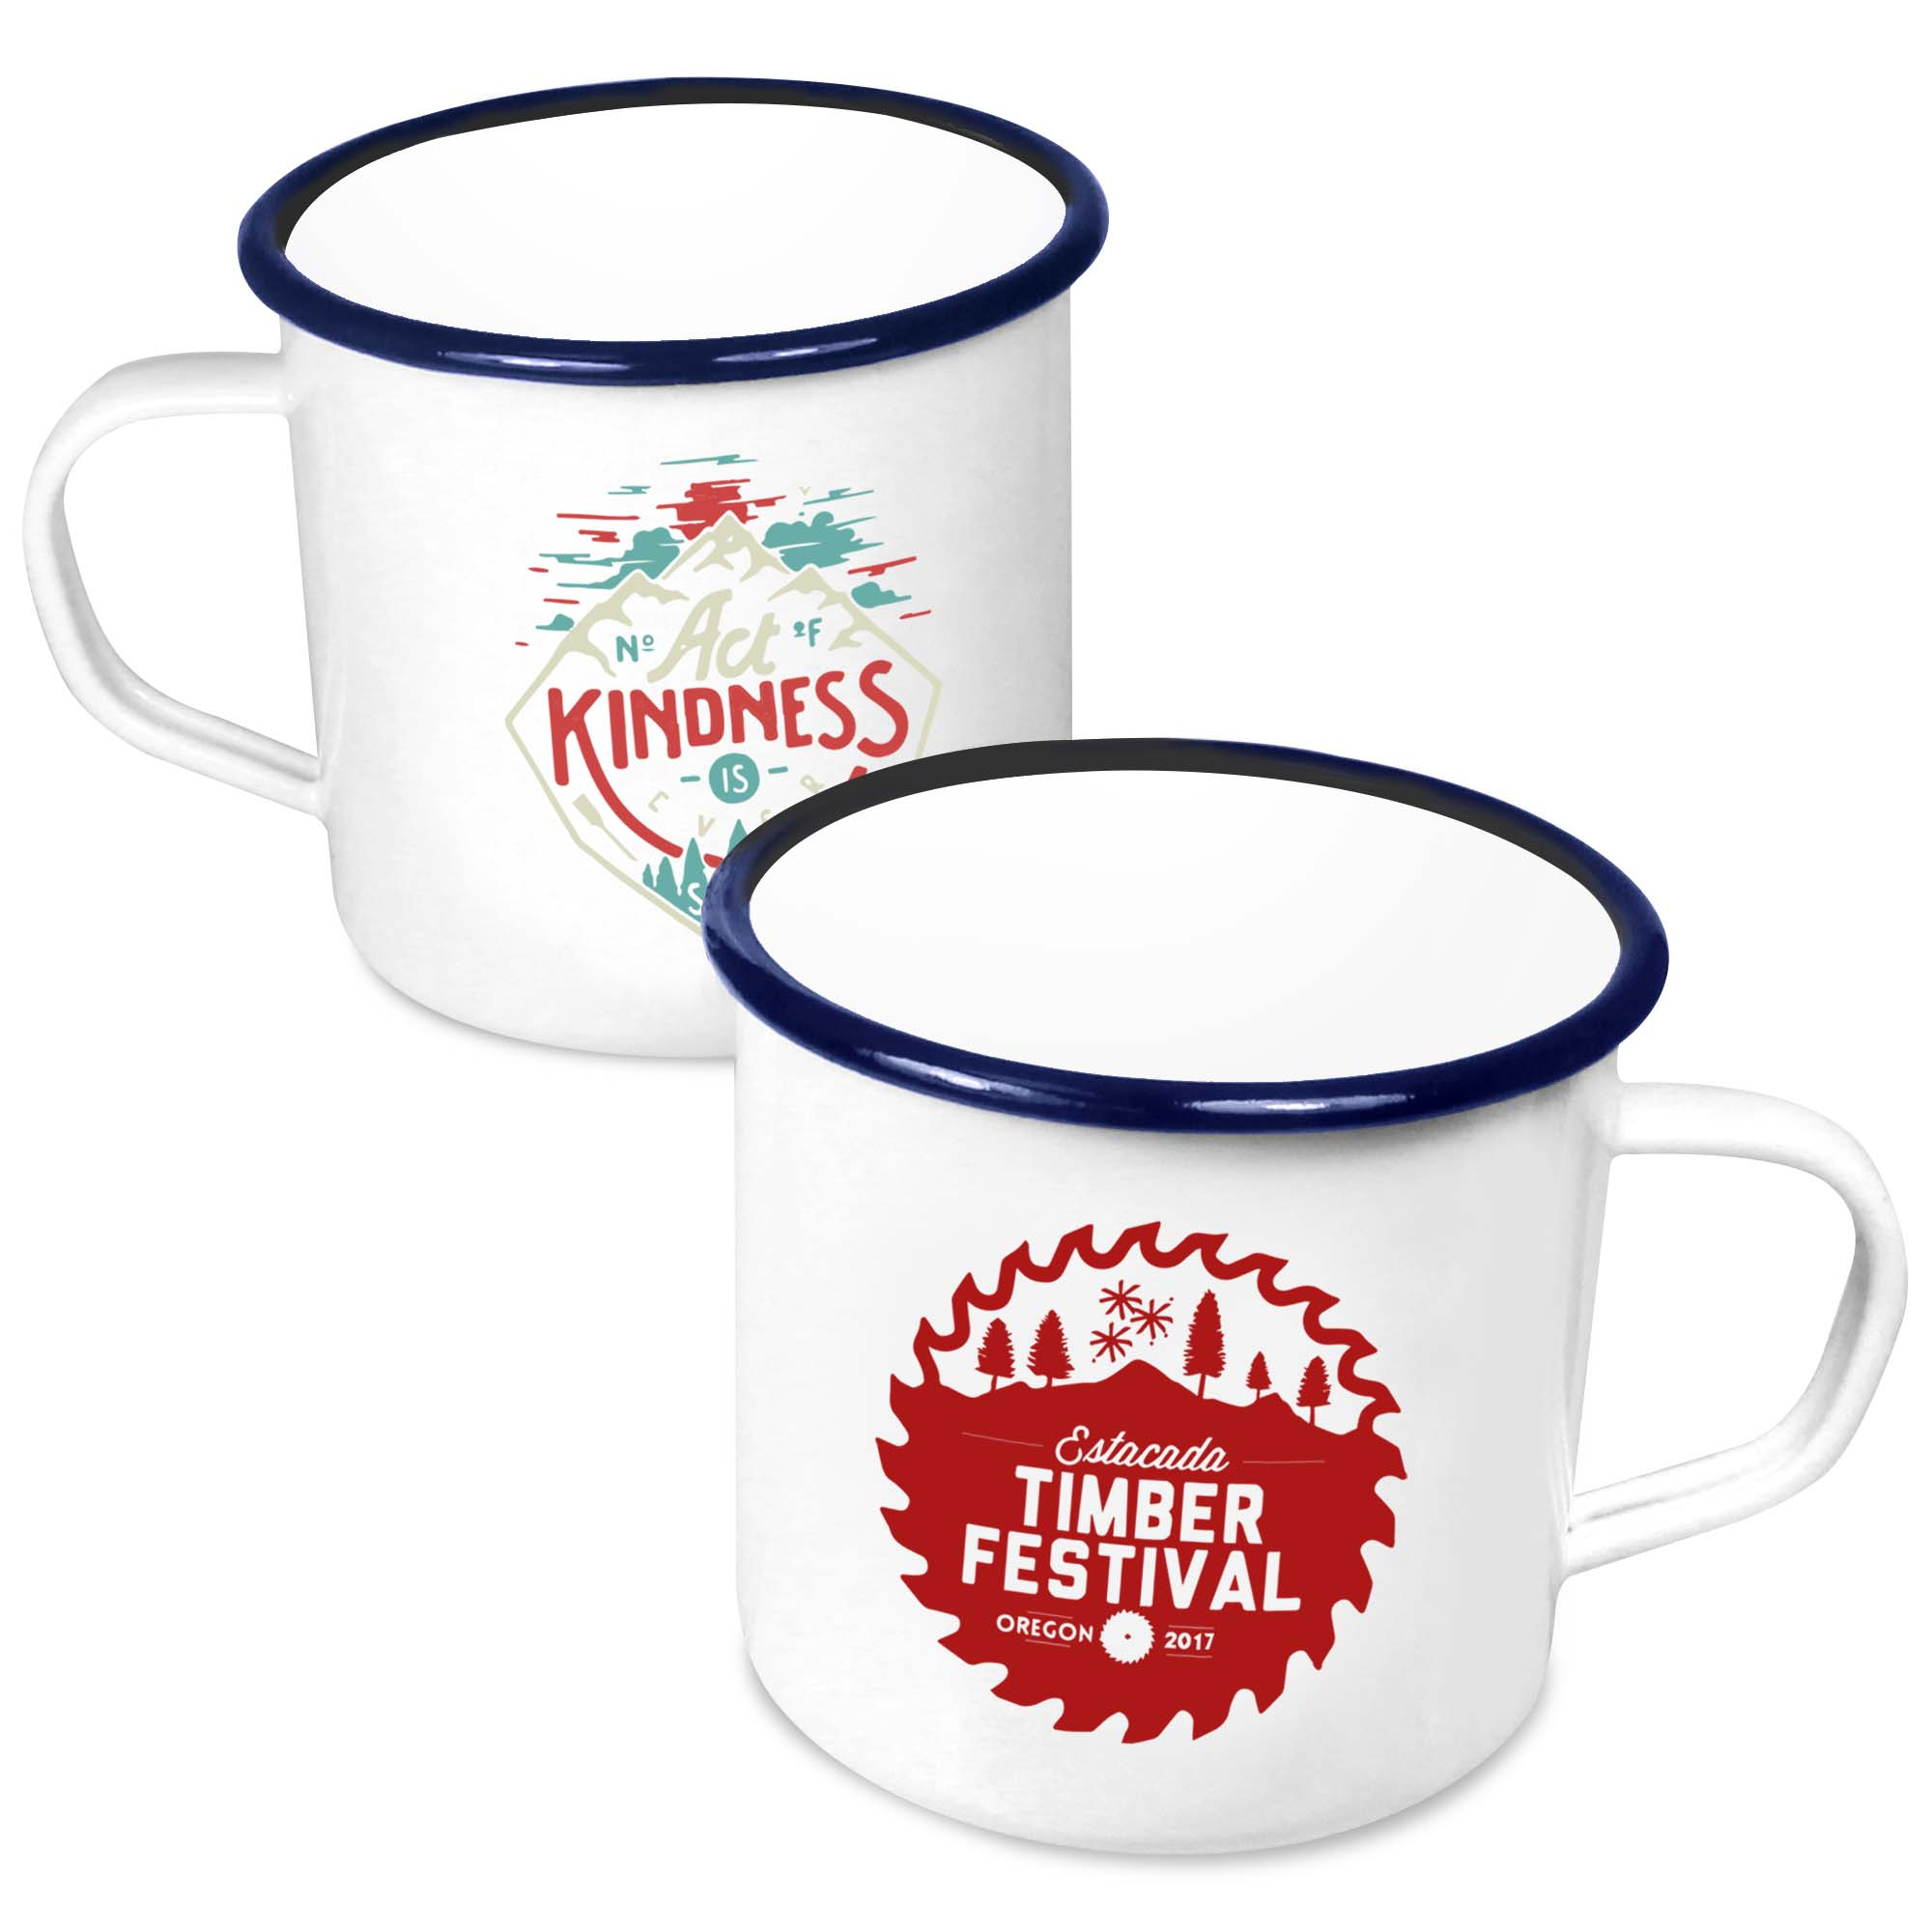 Premium Enamel Mugs 20oz/568ml (White)